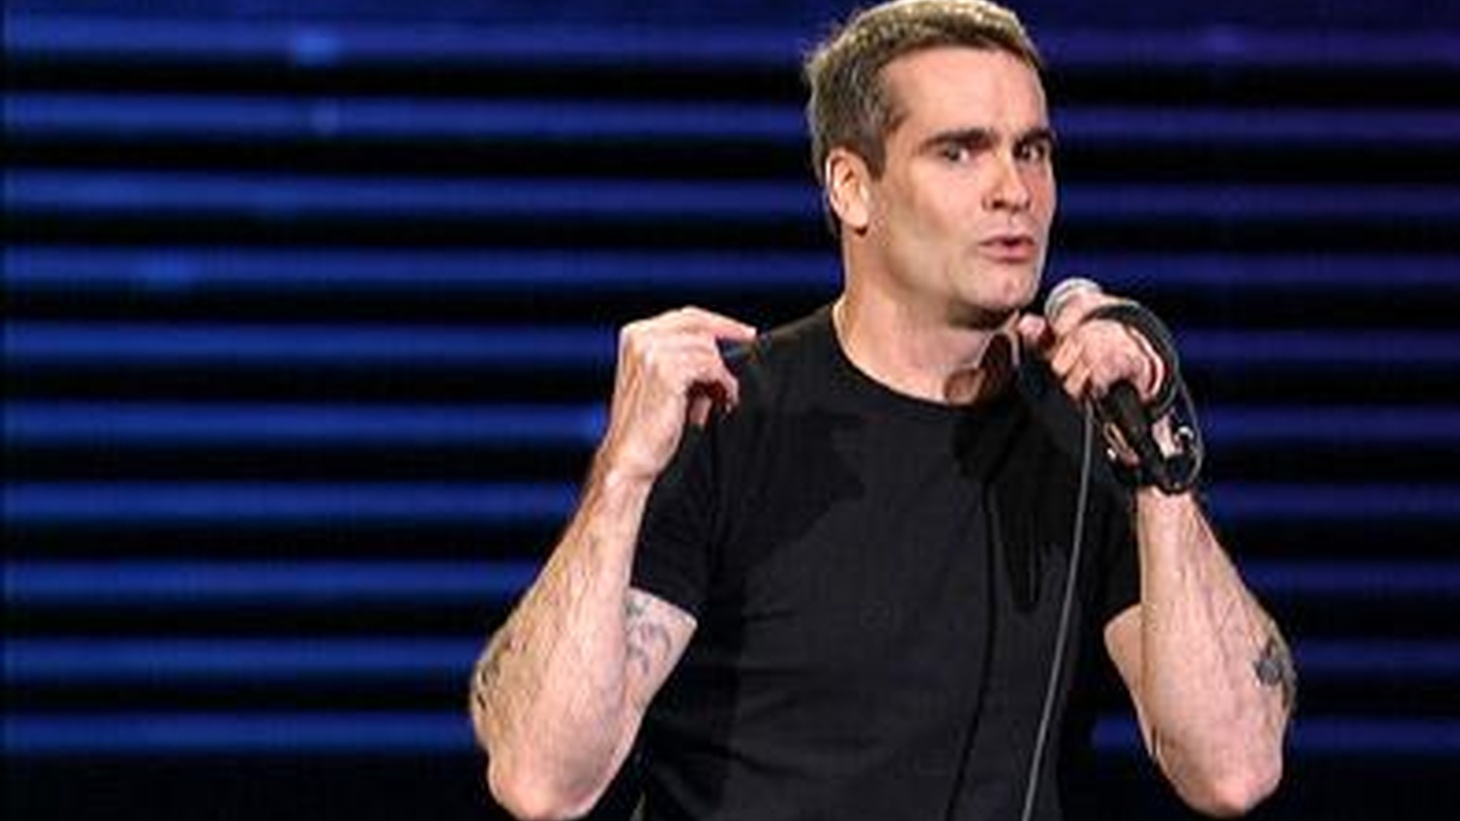 Raconteur Henry Rollins is guest deejay on Morning Becomes Eclectic at 11:15am.